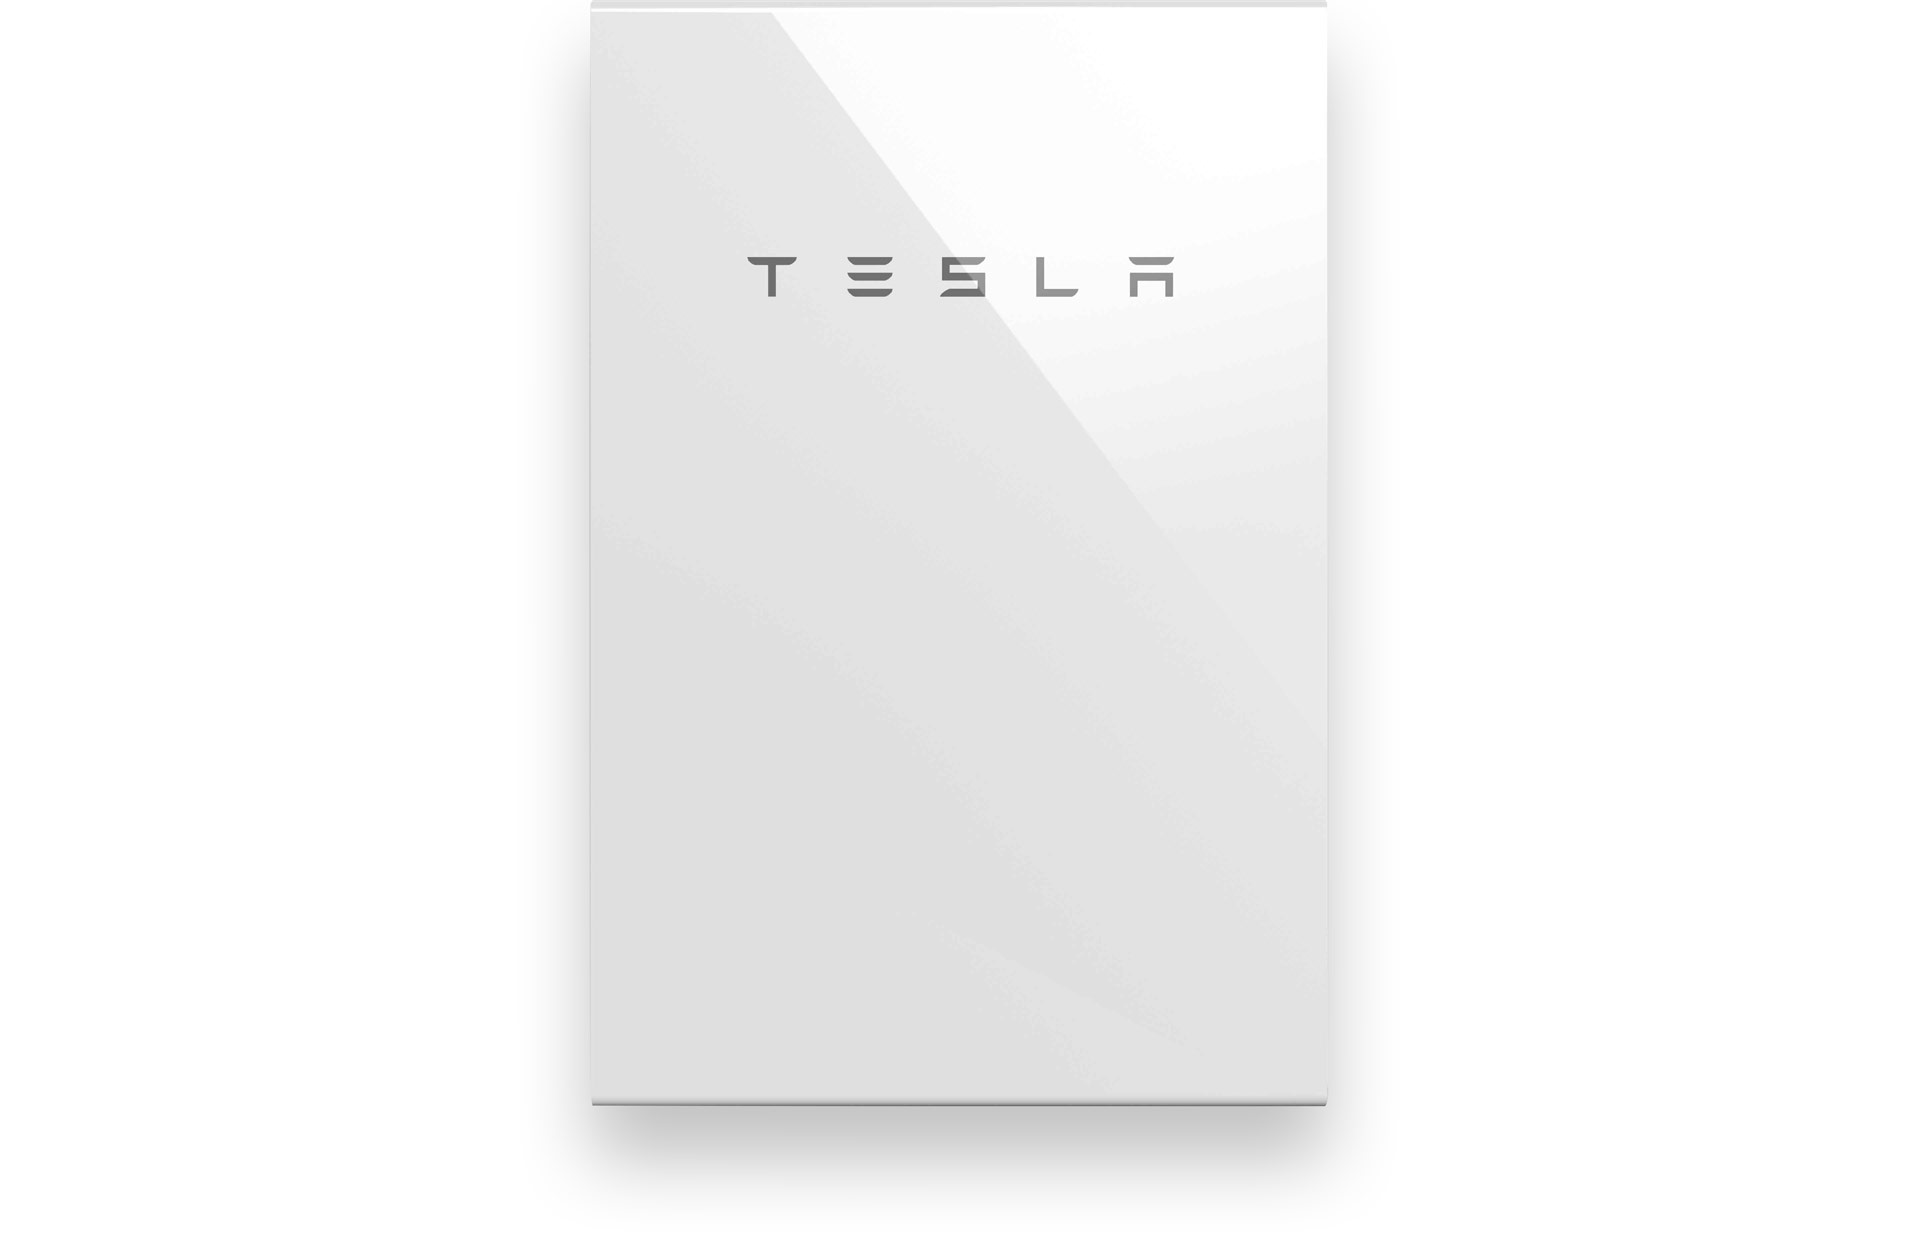 negawatt-tesla-power-wall-novara-1